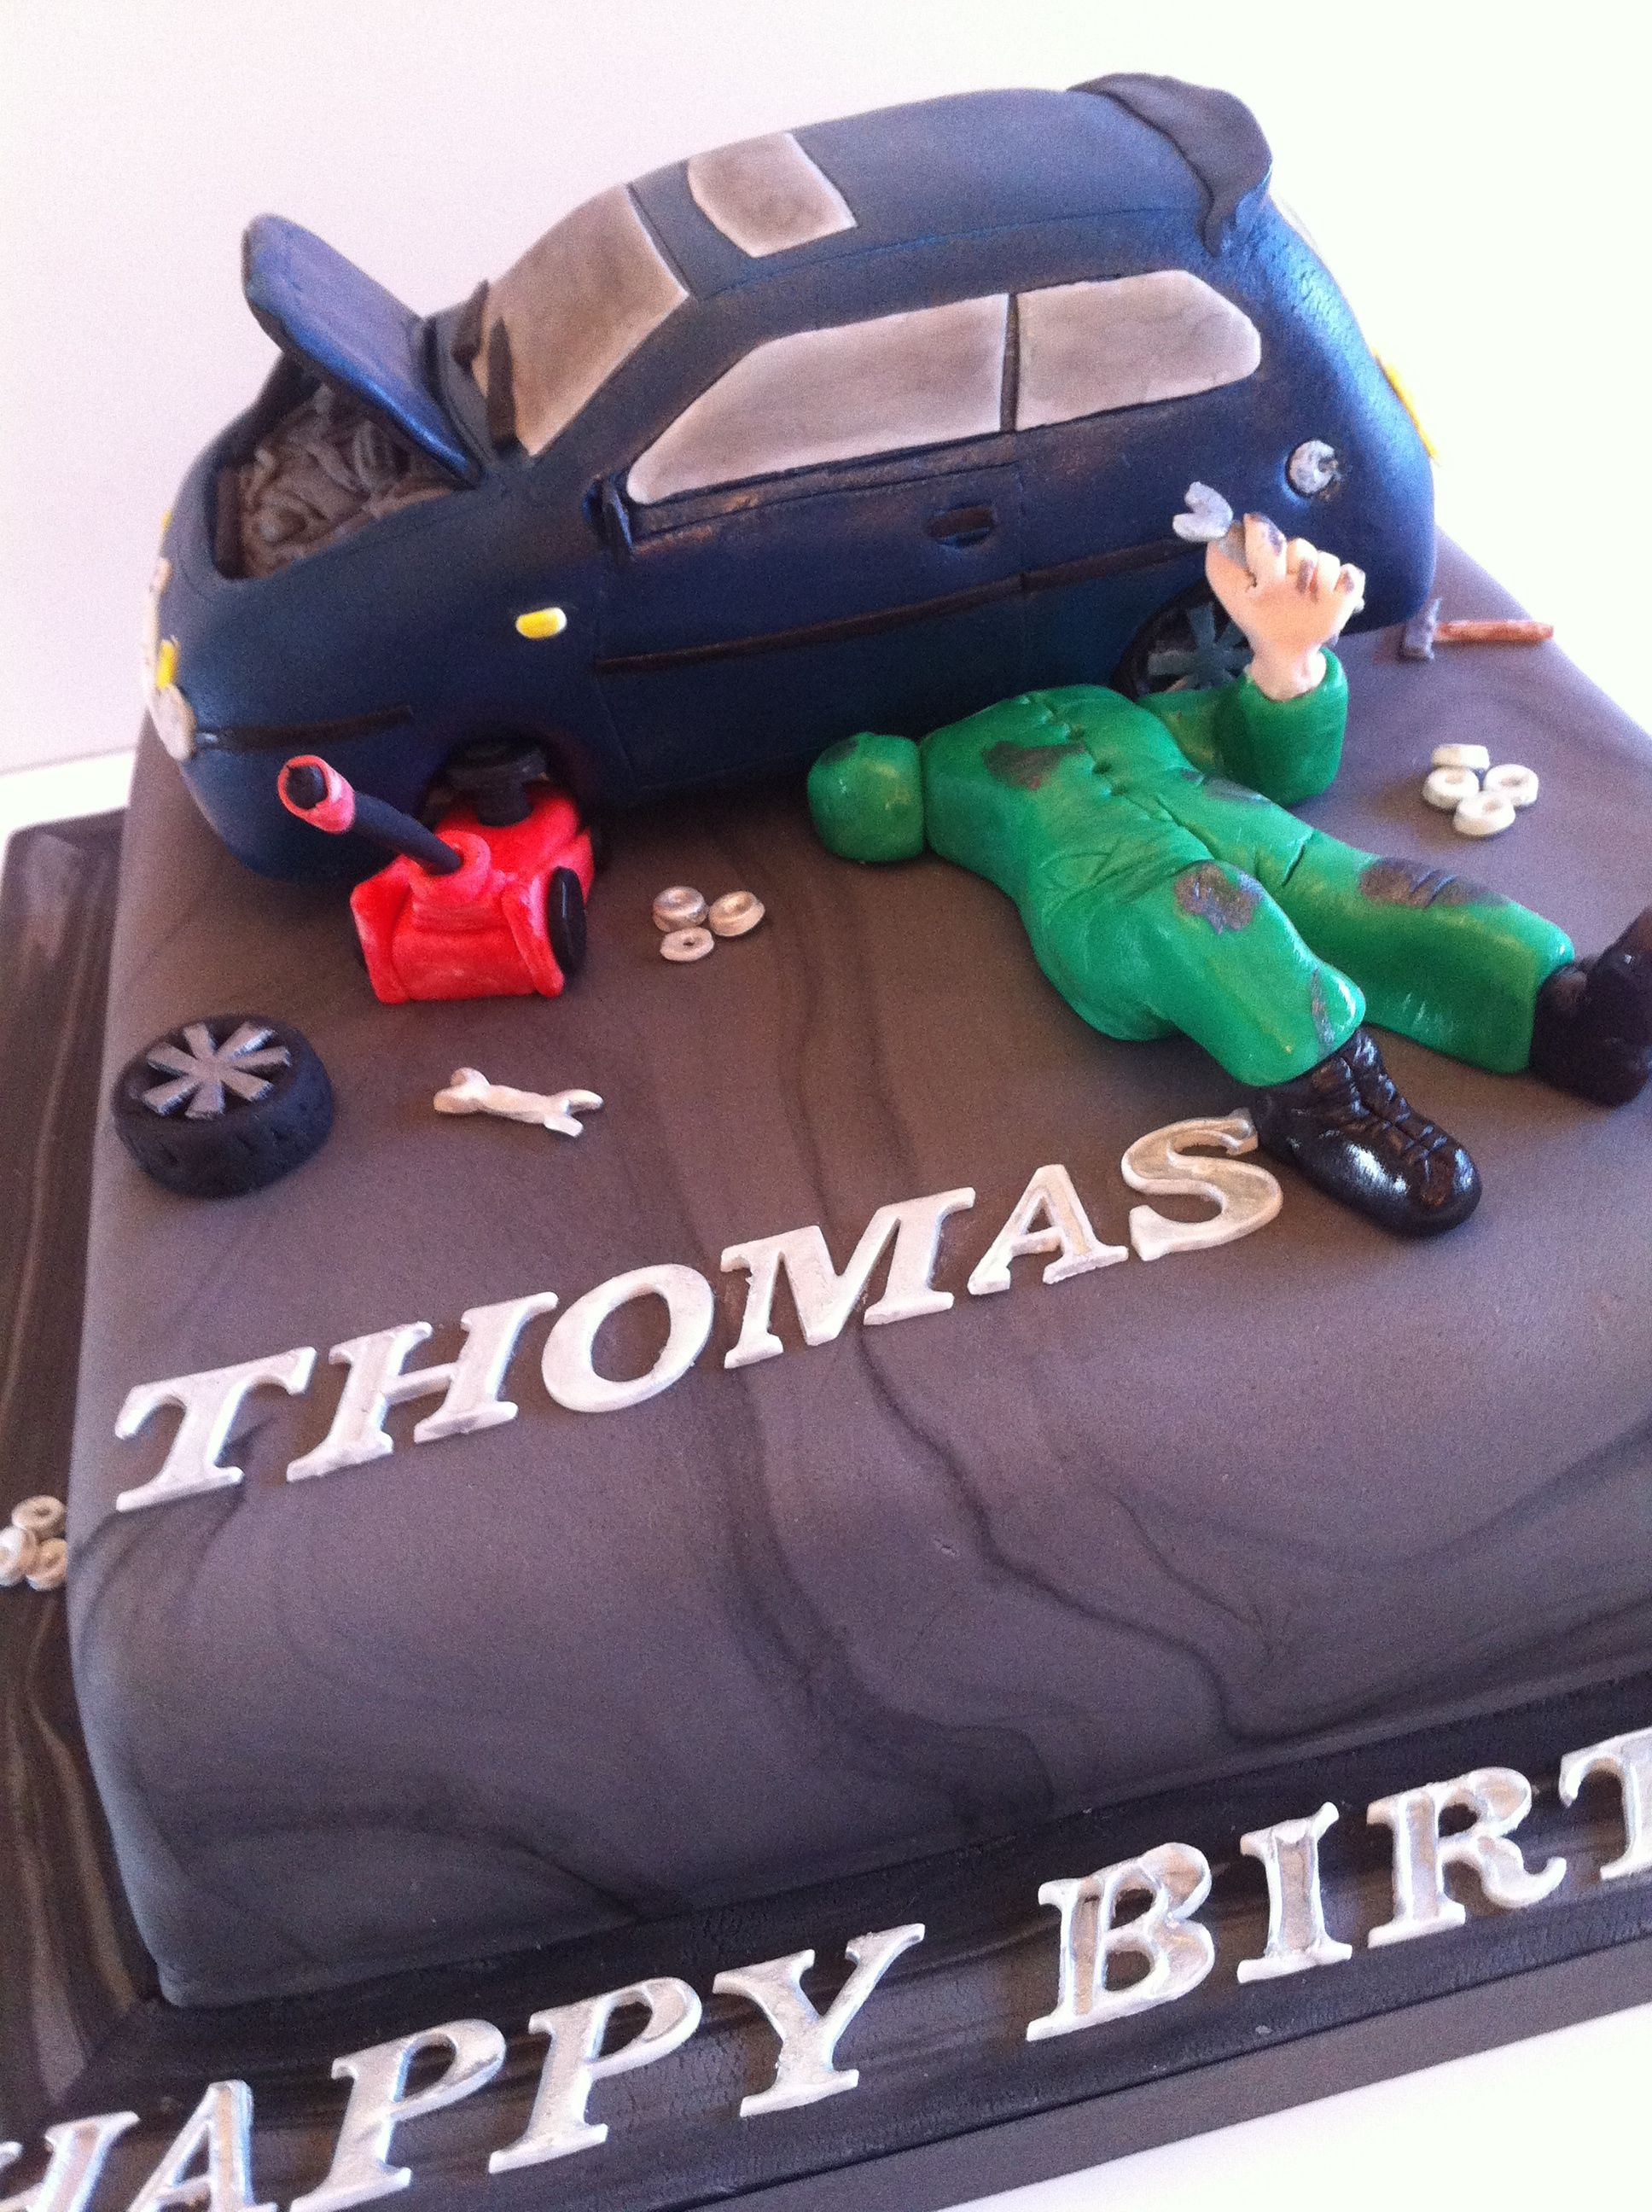 A CAR MECHANIC CAKE complete with mechanic and VW Golf car with